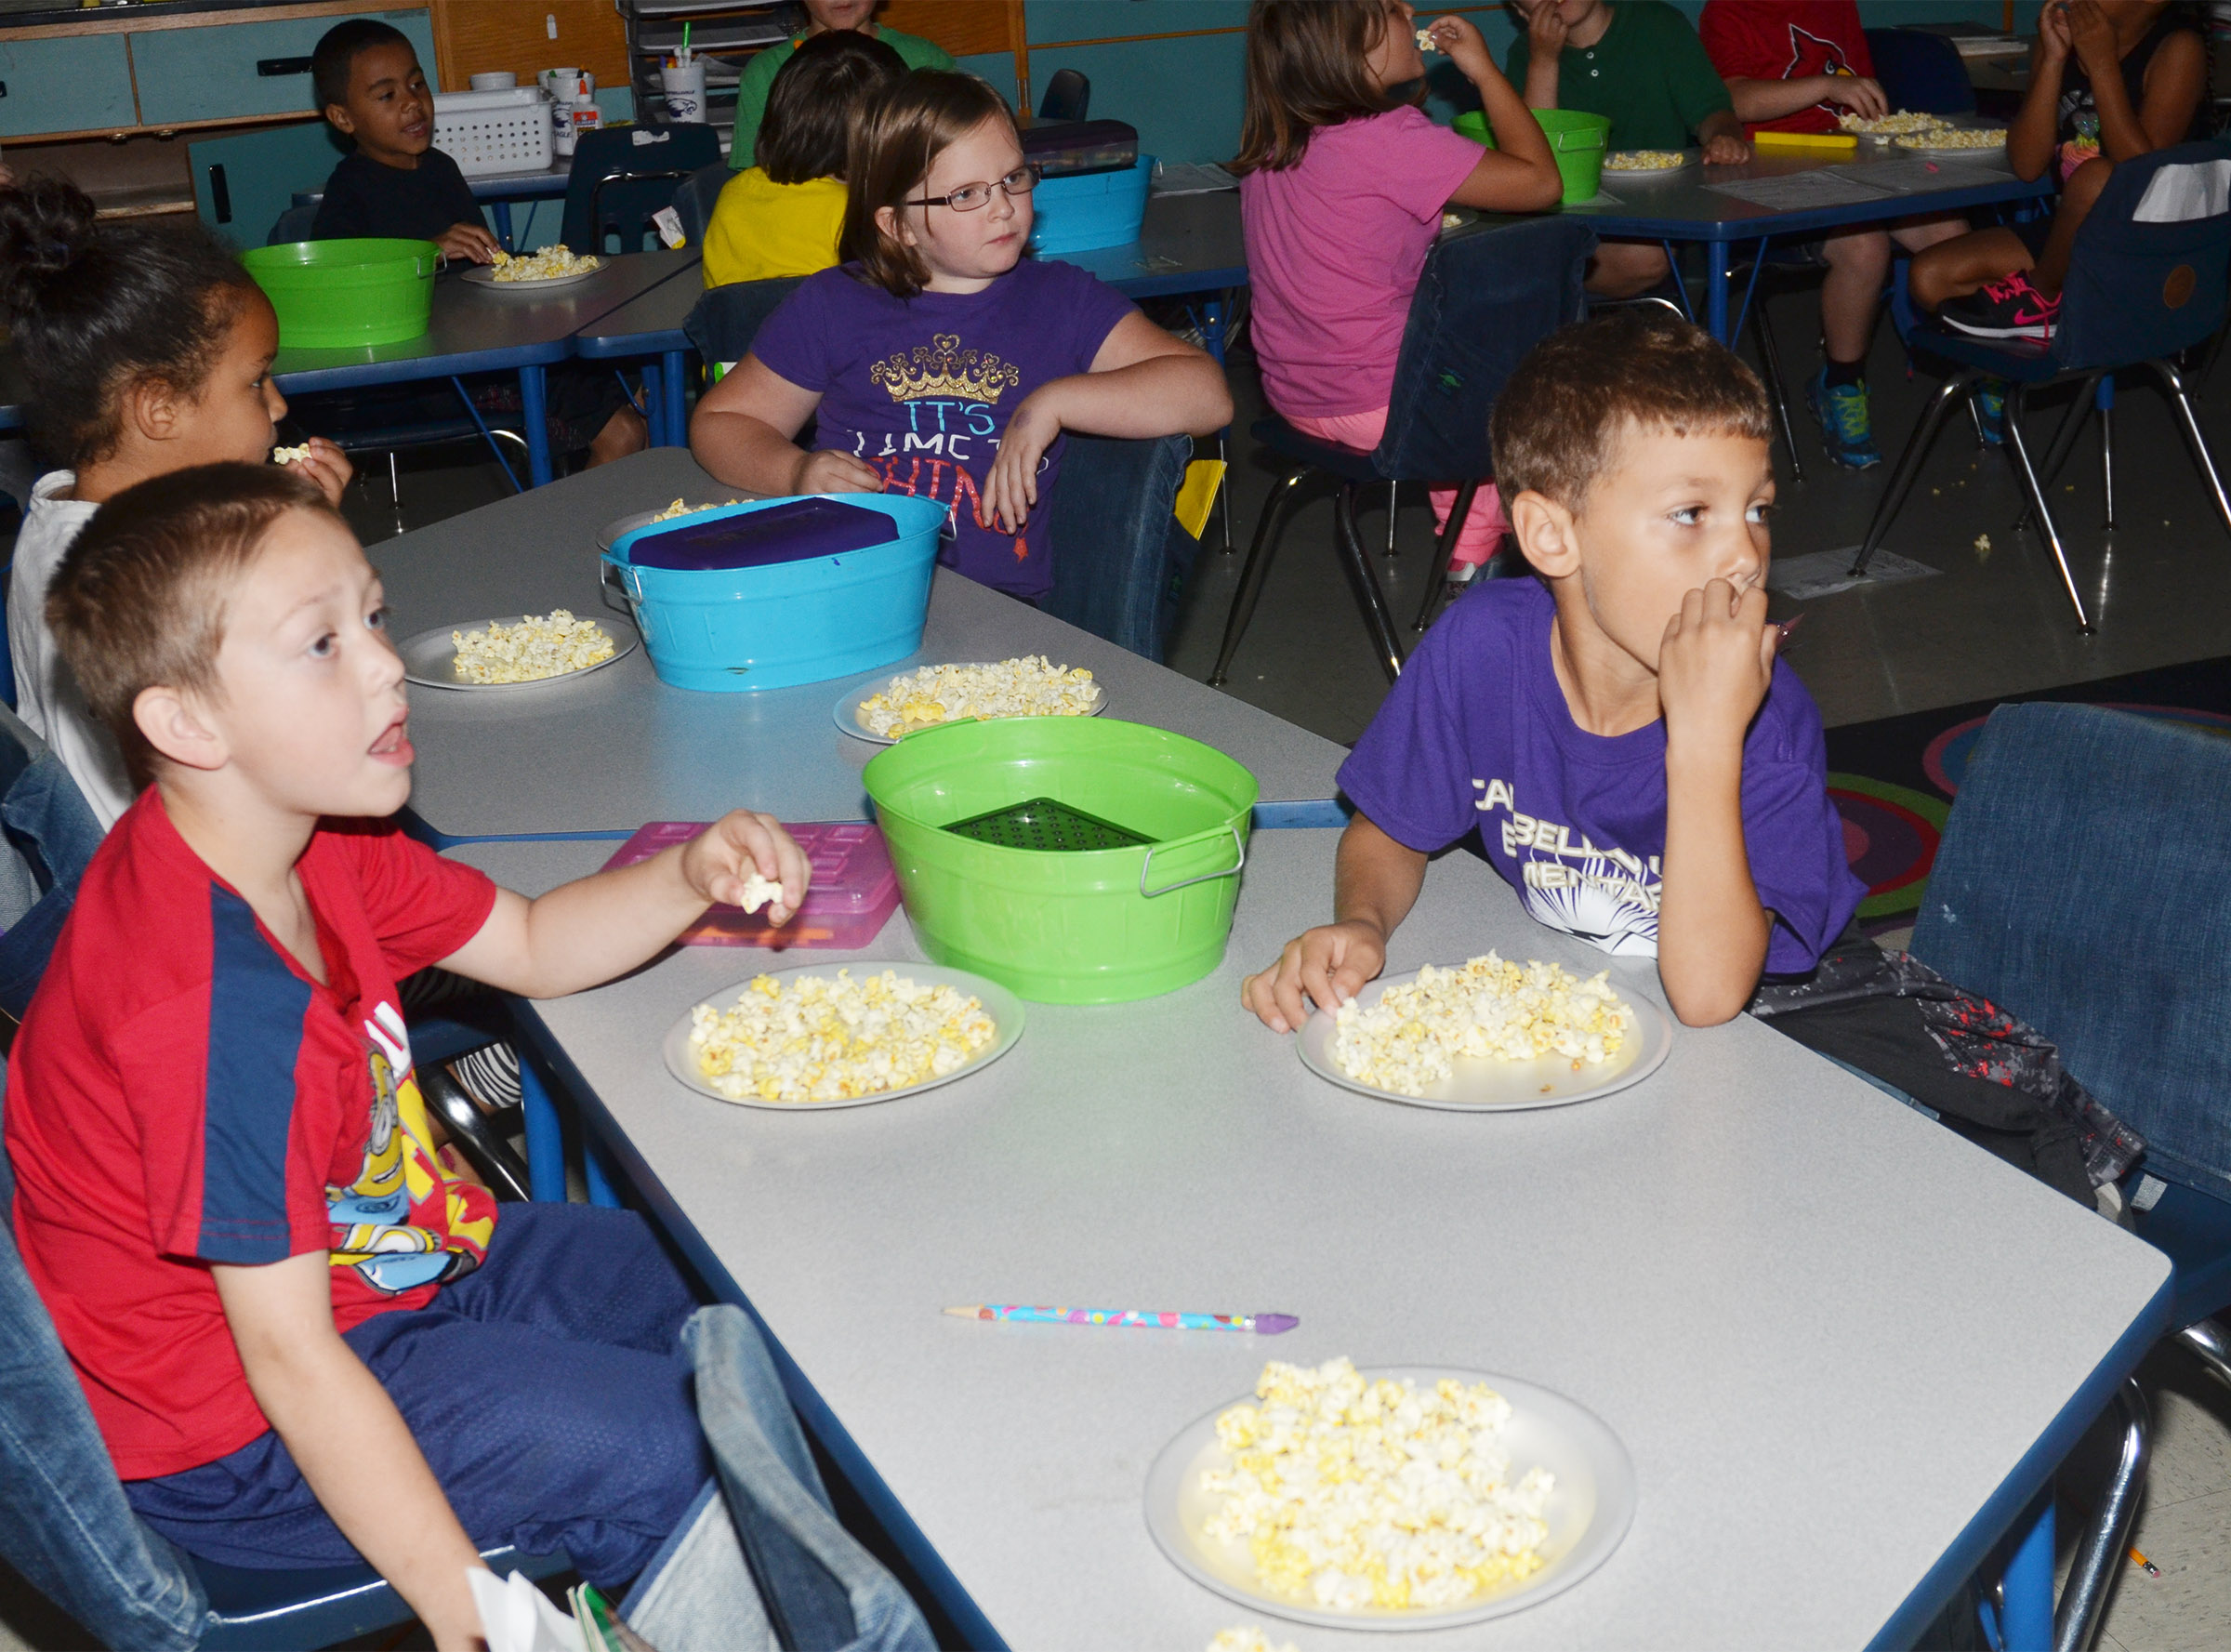 CES first-graders, from left, Jacob Golden, Justice Albrecht and Shylan Dunn enjoy their popcorn snack.